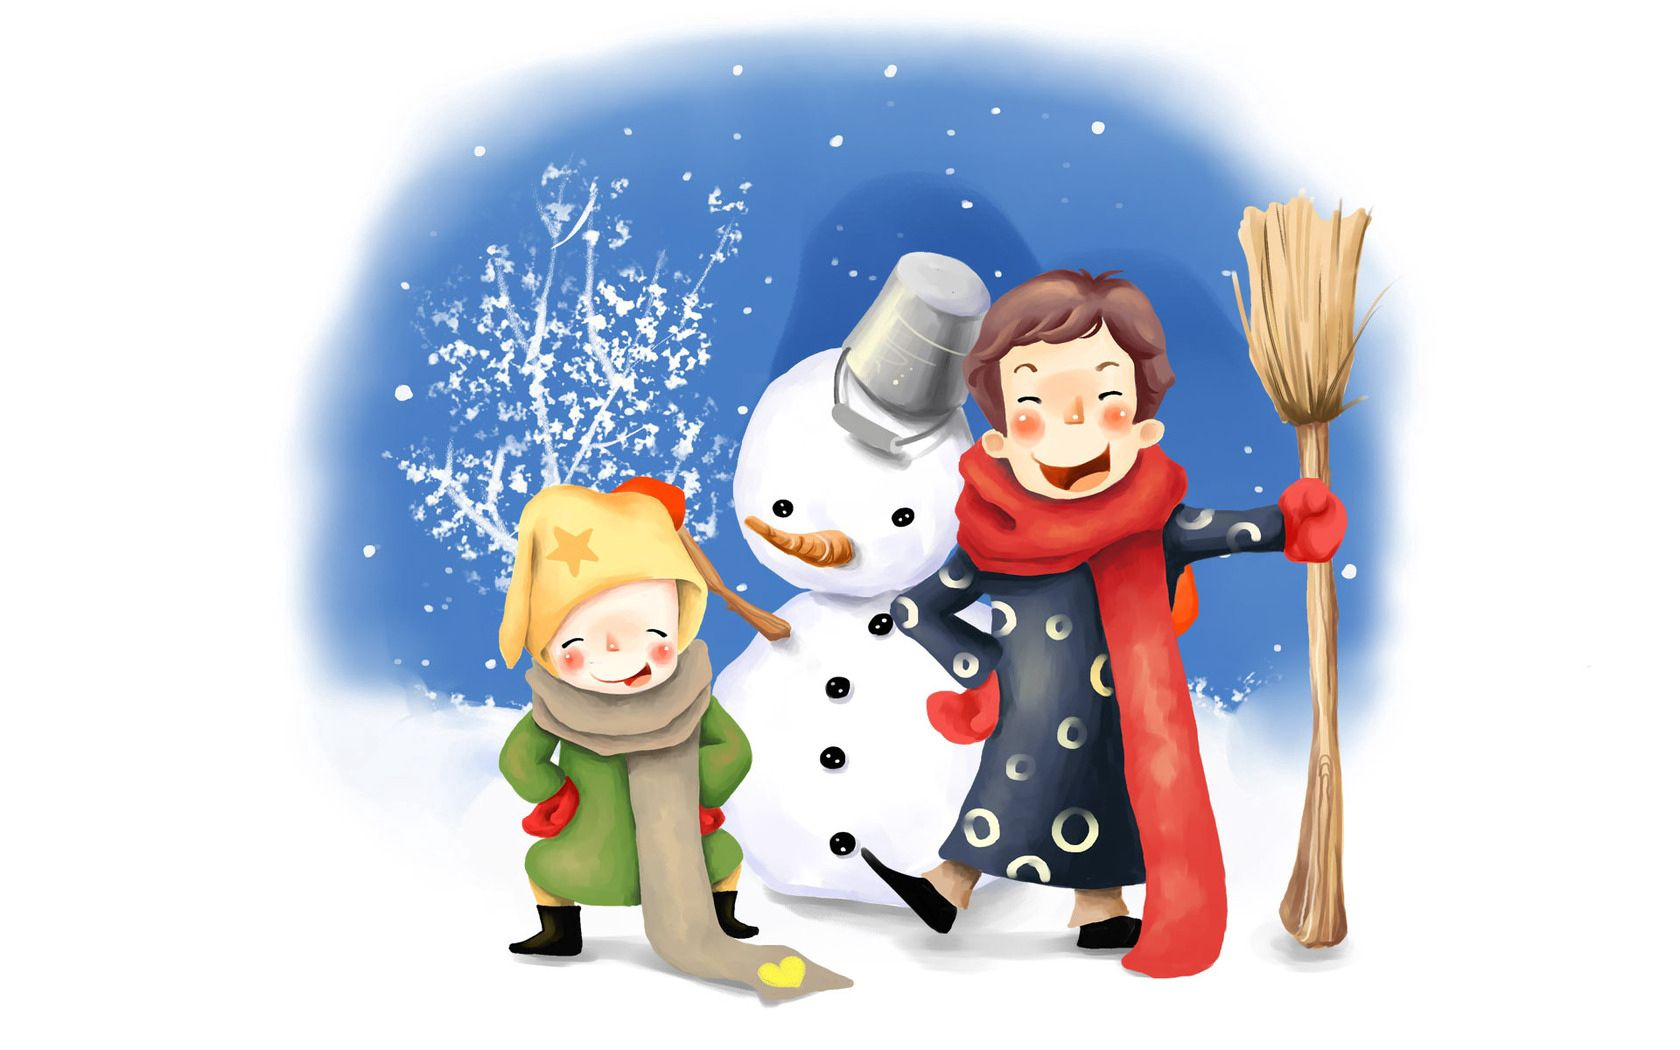 153940 Screensavers and Wallpapers Children for phone. Download Miscellanea, Miscellaneous, Picture, Drawing, Children, Fun, Merriment, Snowman, Winter, Bucket, Broom, Buttons, Scarves pictures for free